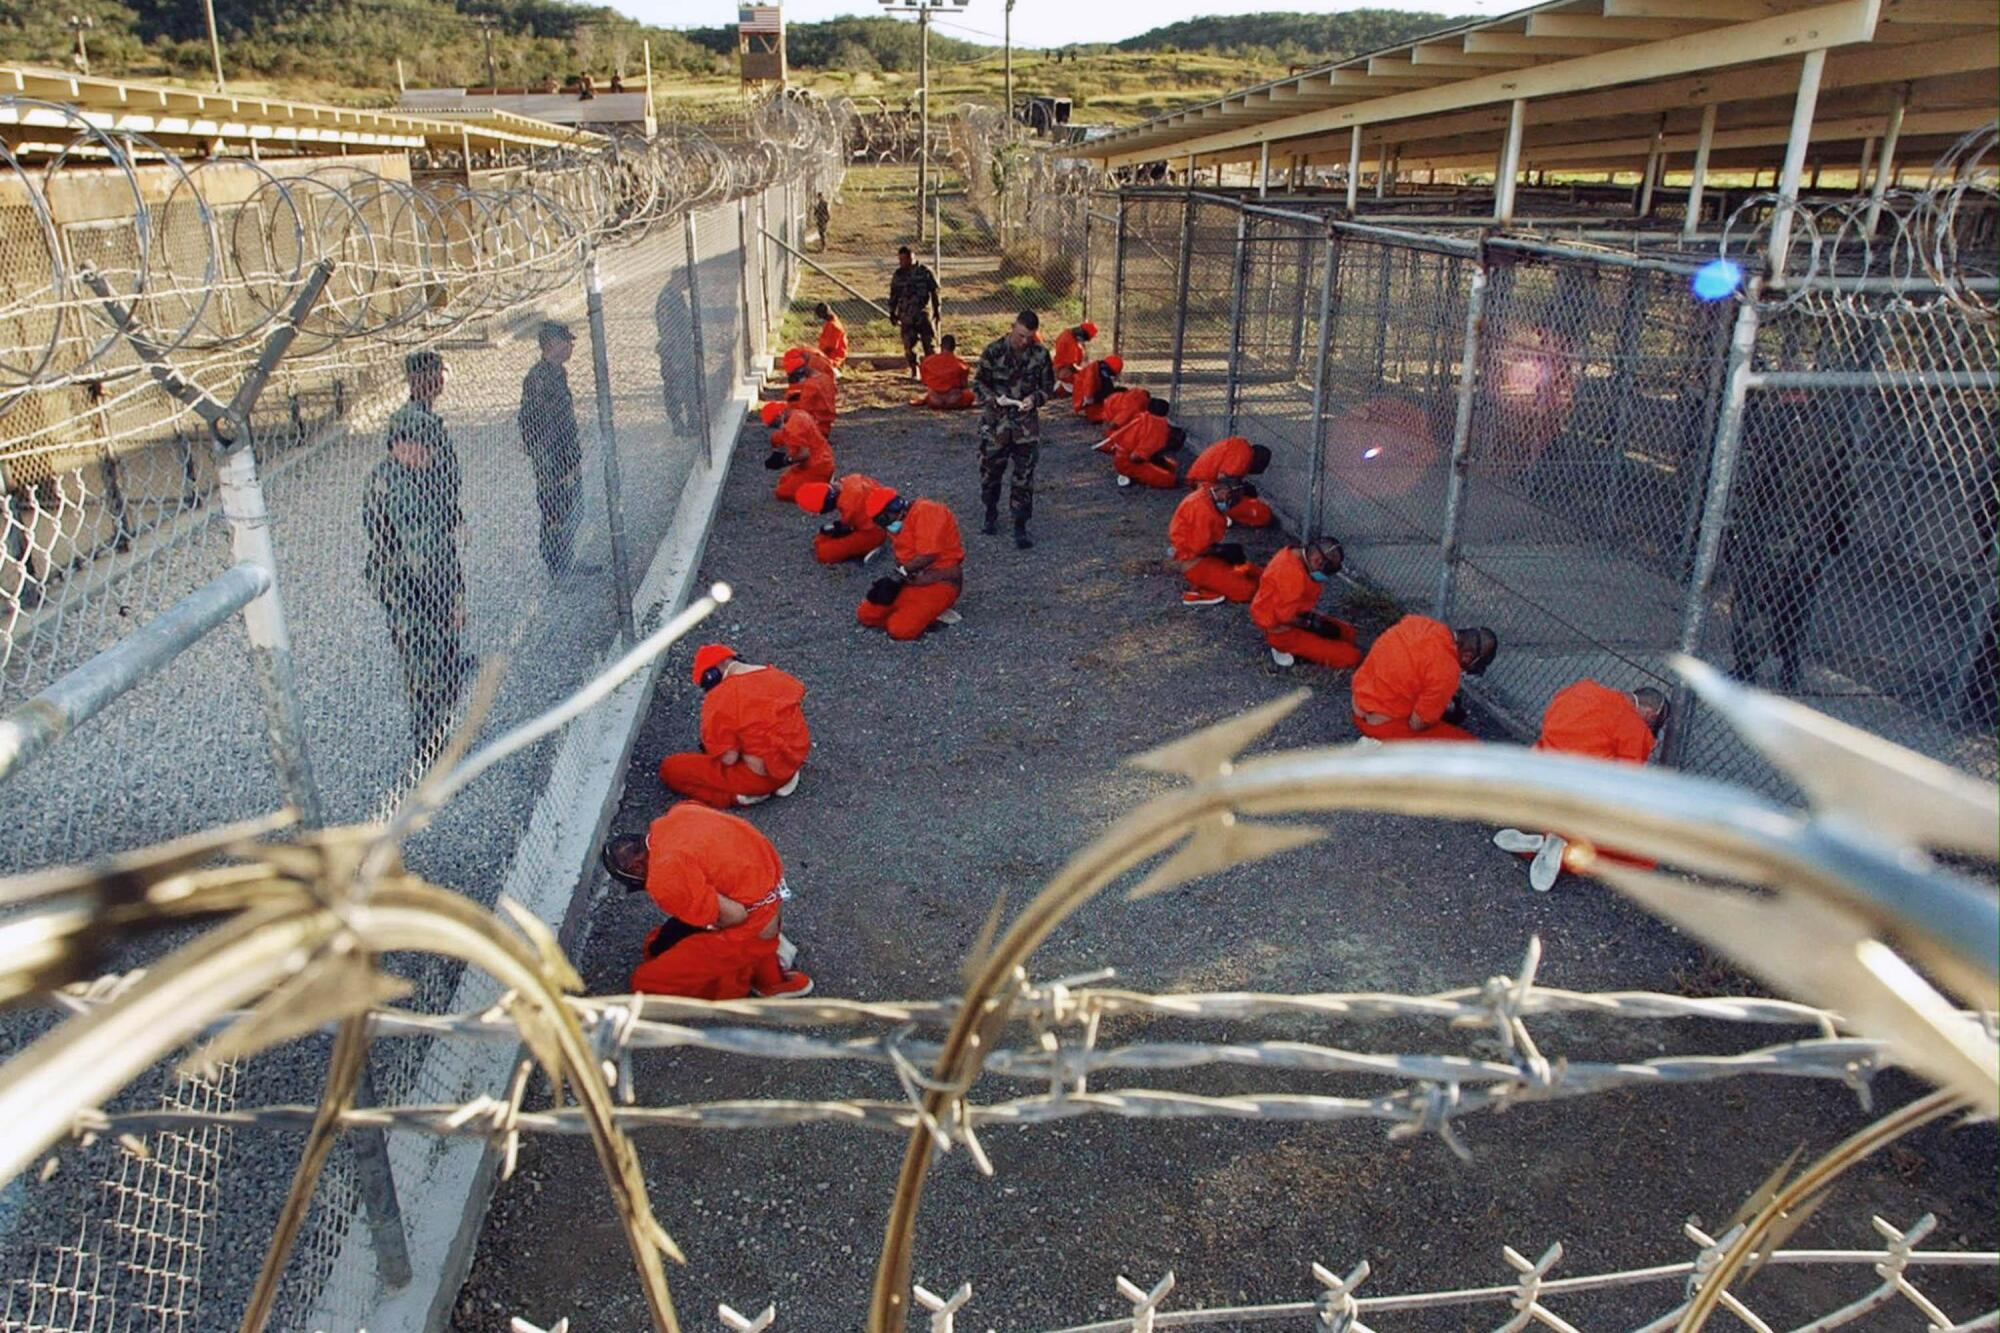 Two rows of men in orange jumpsuits sit in a fenced-off area, watched by men in military fatigues